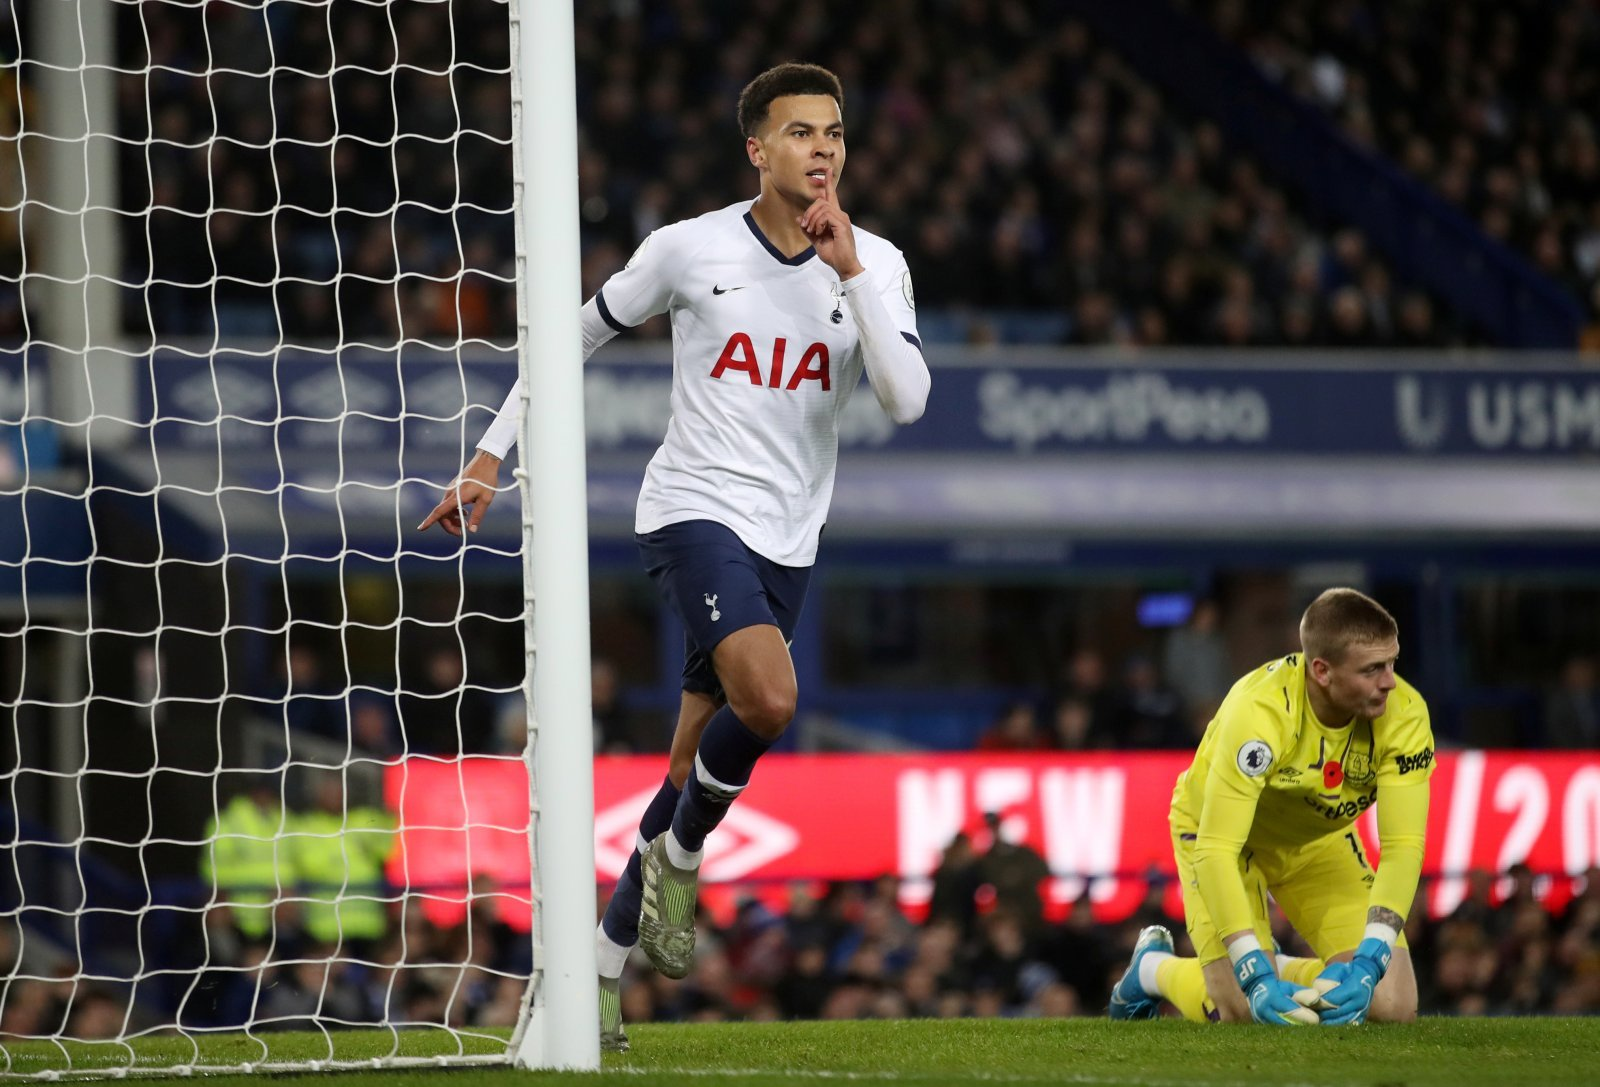 Tottenham Hotspur: Many fans loved seeing Dele Alli back amongst the goals